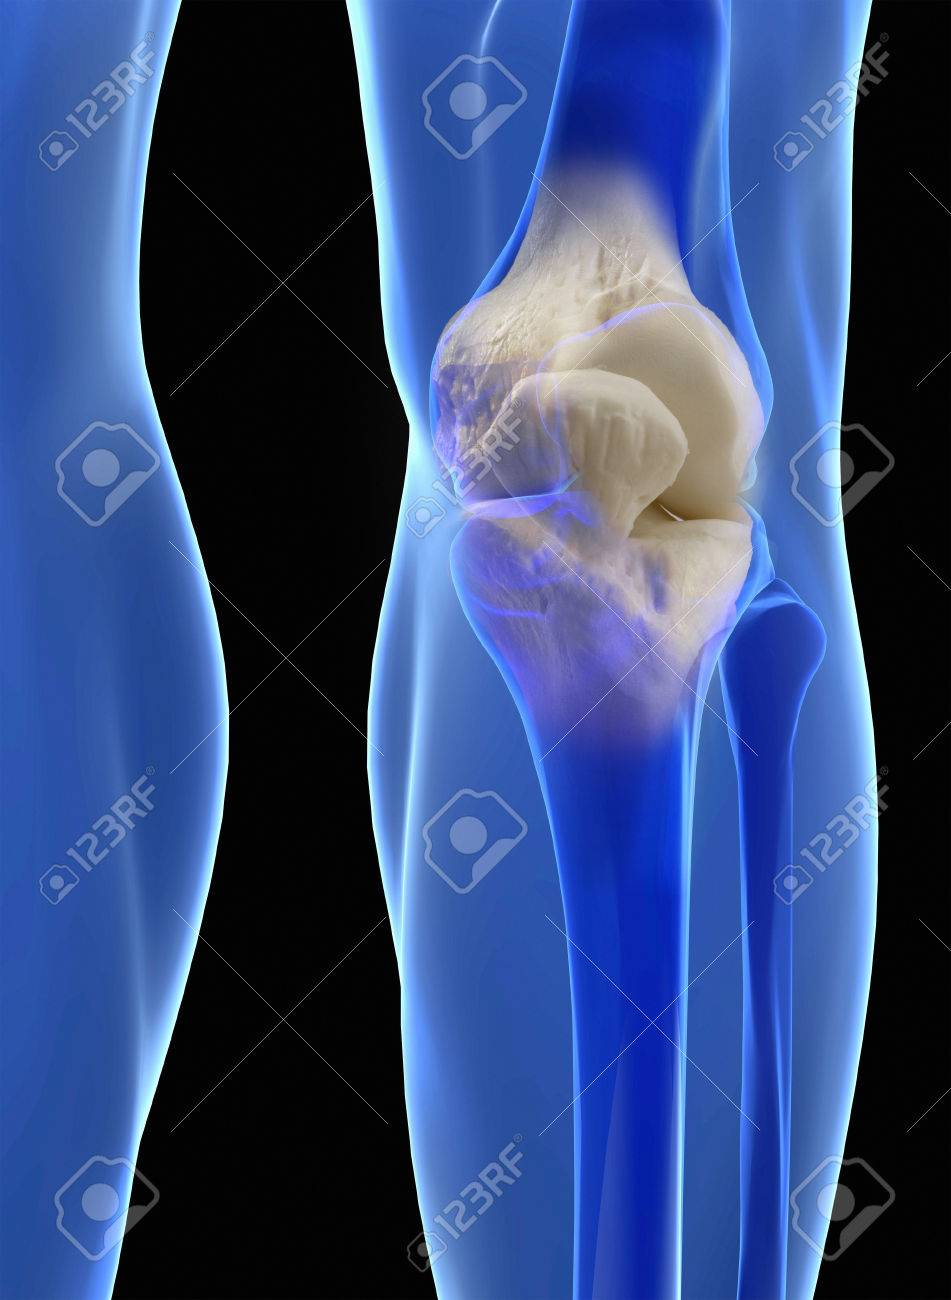 Human Knee Anatomy With Femur, Tibia And Fibula Bones Under X-rays ...